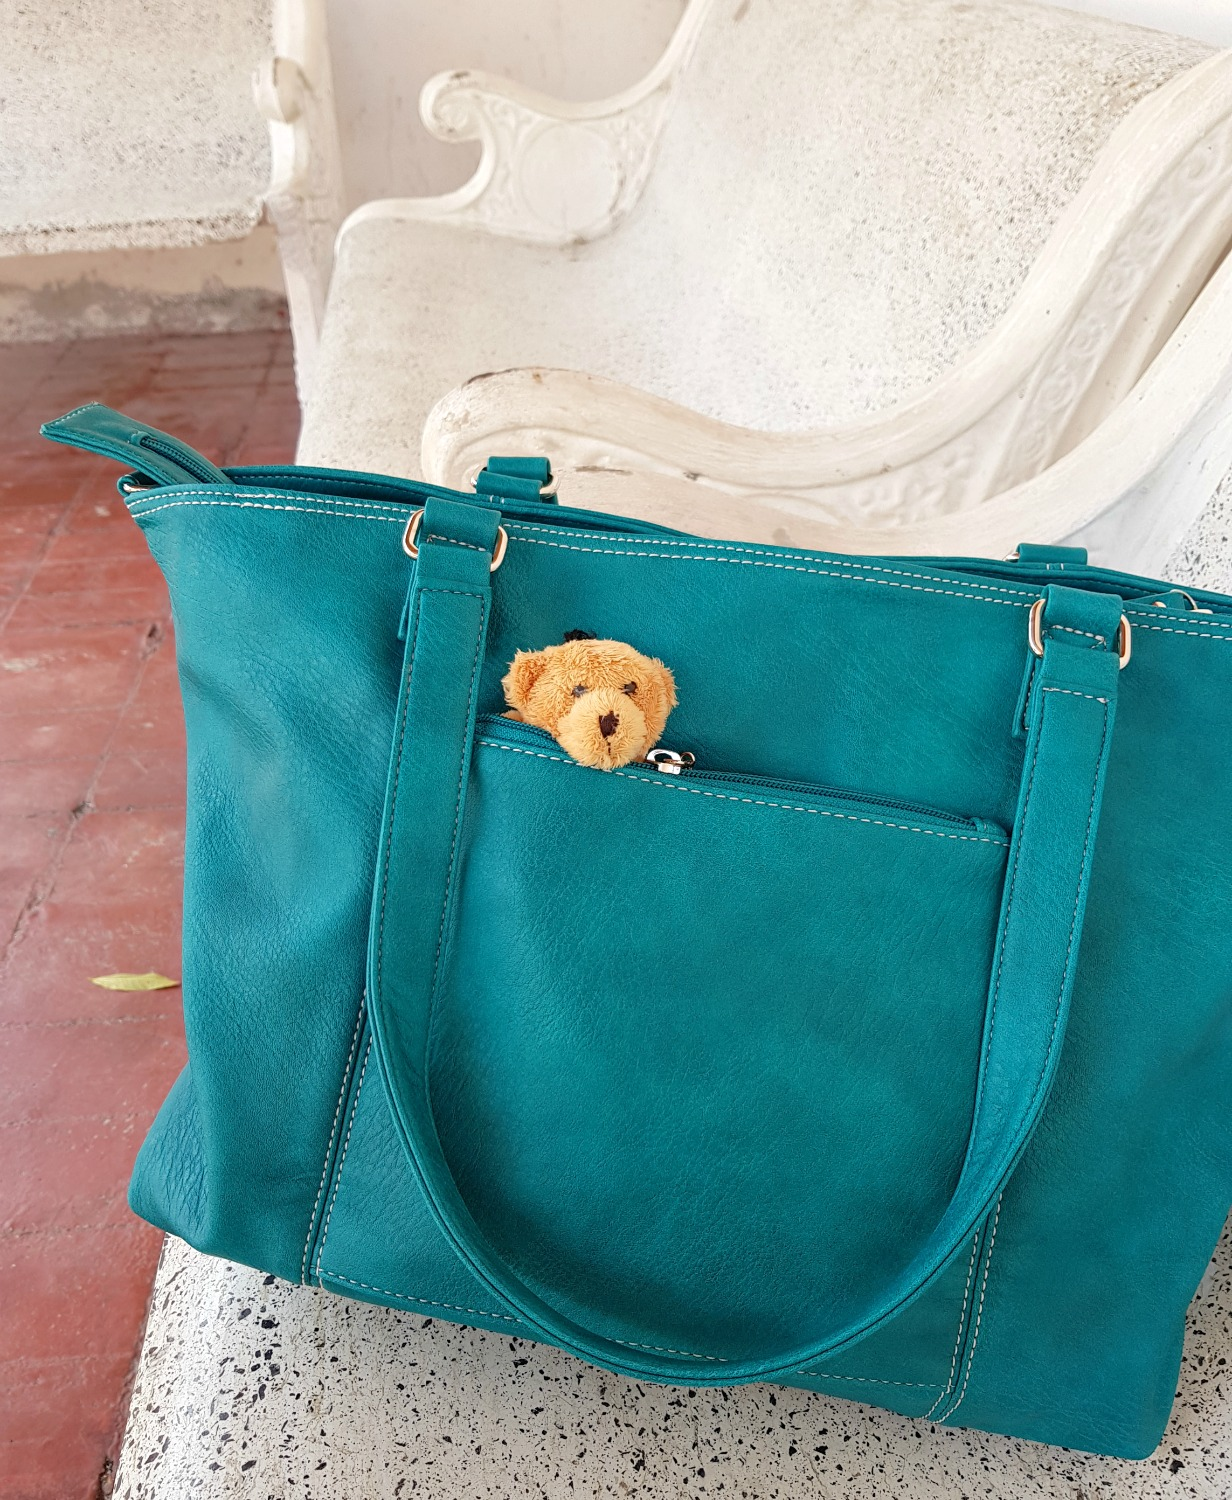 Small bear looking out of the side zip pocket on the Mini Jen bag - my Mia Tui hand luggage review